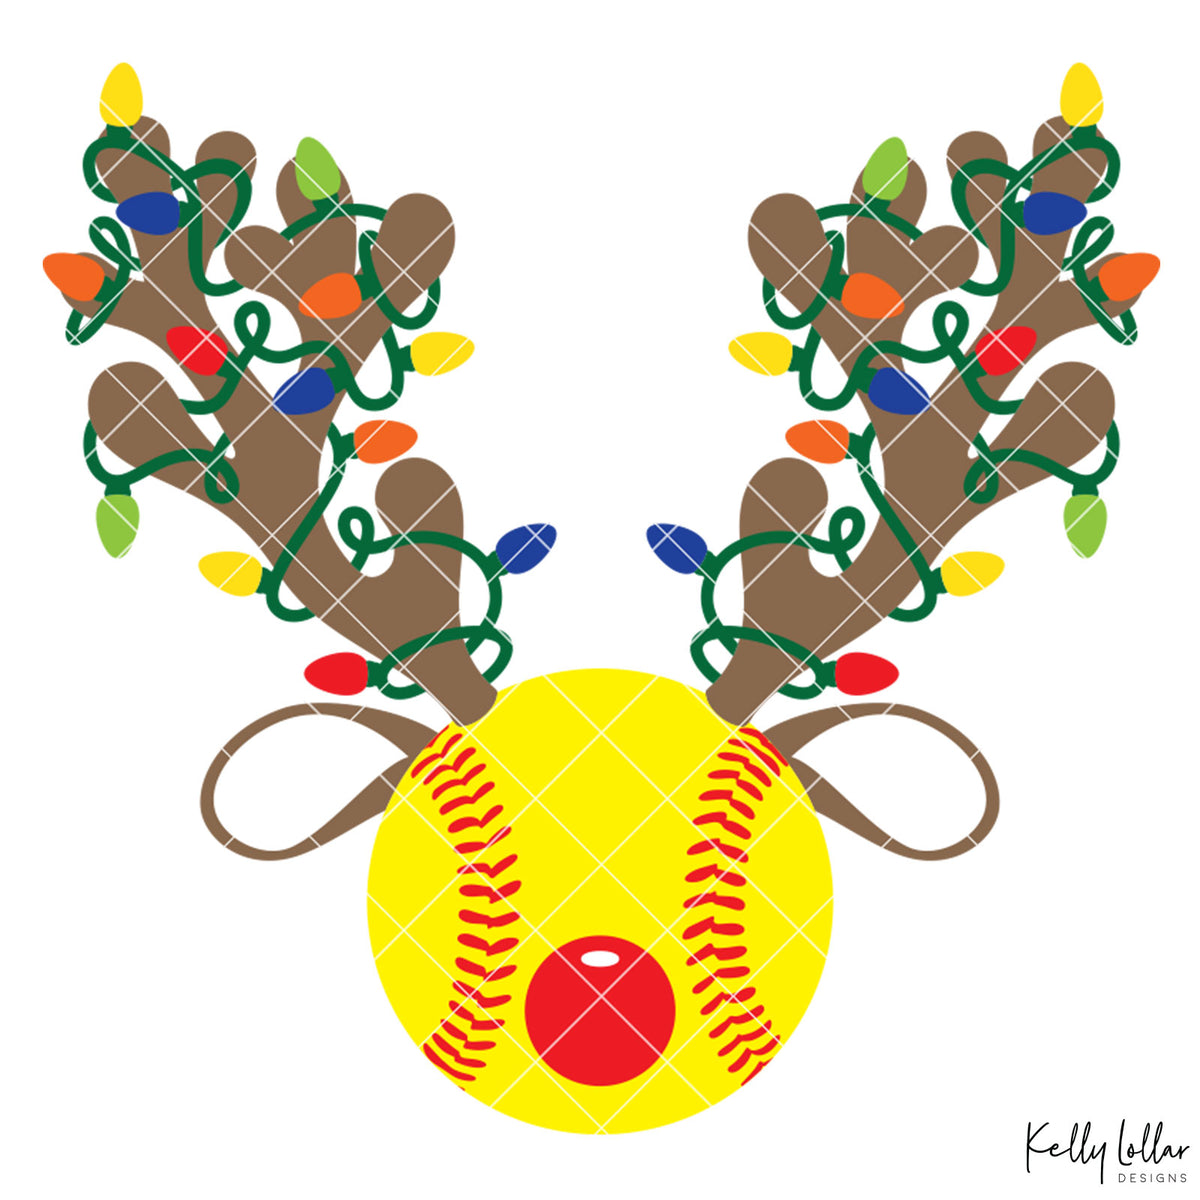 Reindeer Softball | Christmas Light Wrapped Reindeer Antlers and Ears on a Baseball or Softball for Holiday Shirts and Decor | SVG DXF PNG Cut Files